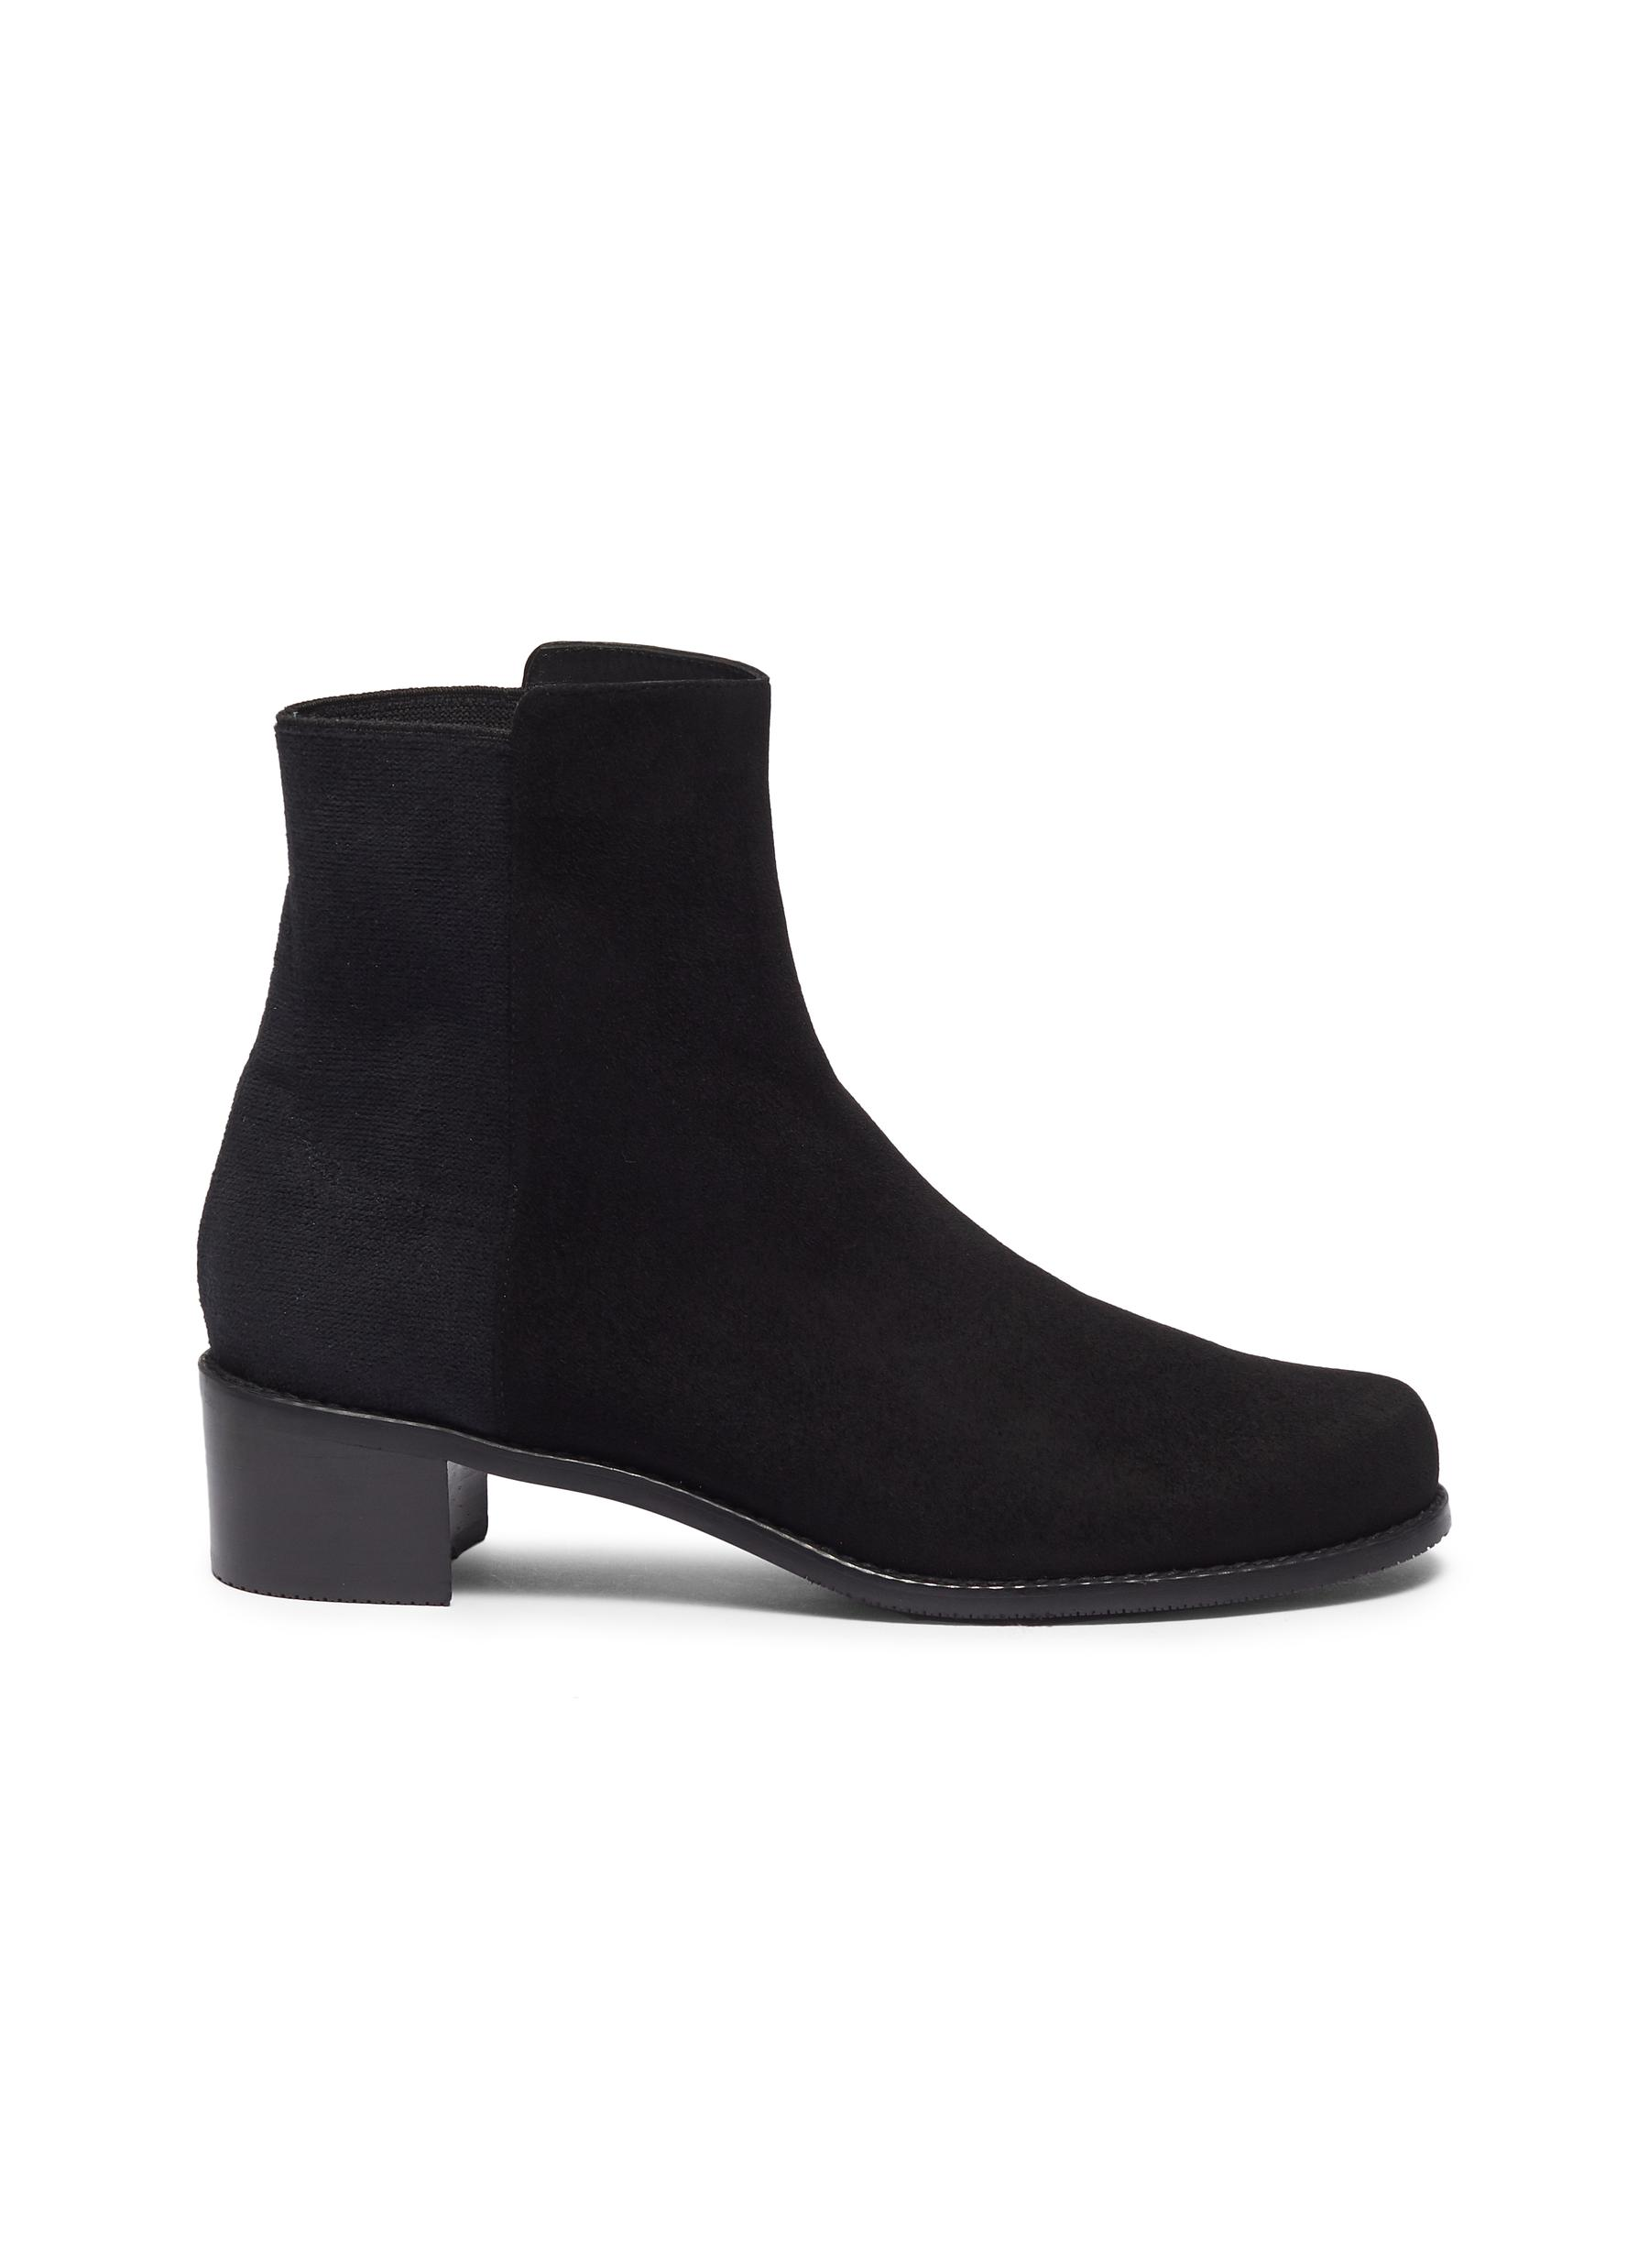 Easyon panelled suede ankle boots by Stuart Weitzman